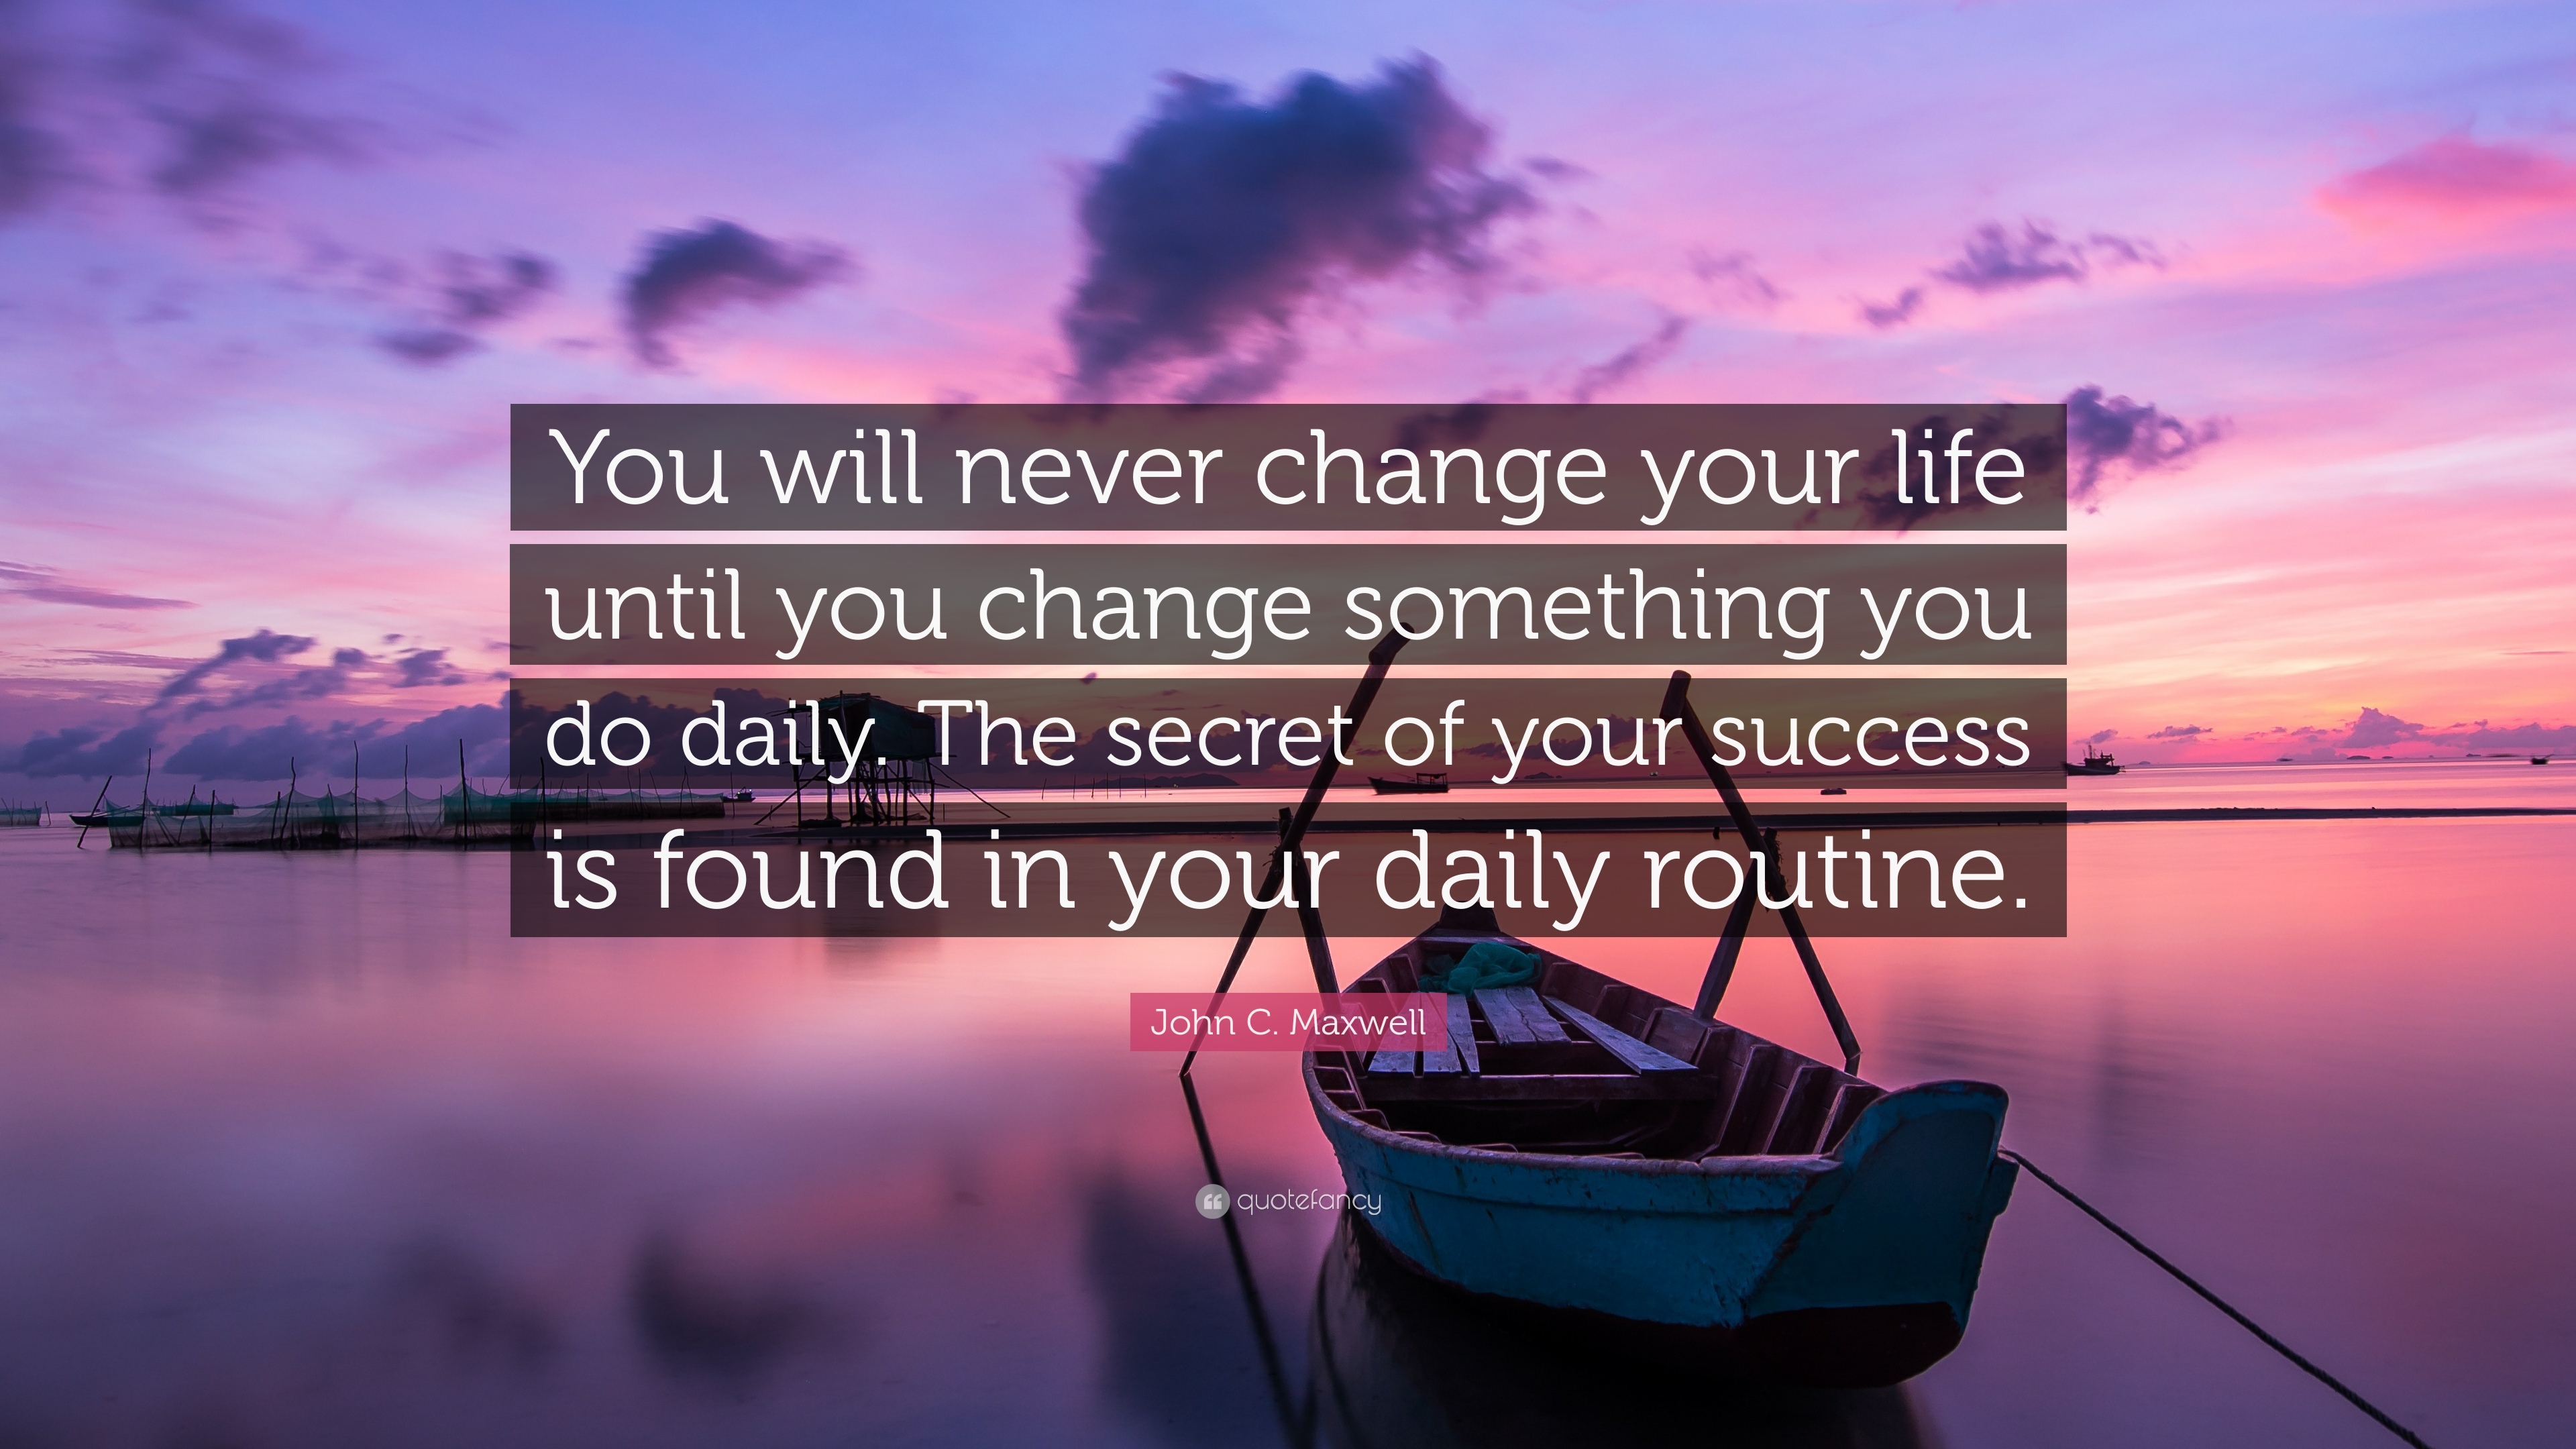 40somethingmag图片_you will never change your life until you change something you